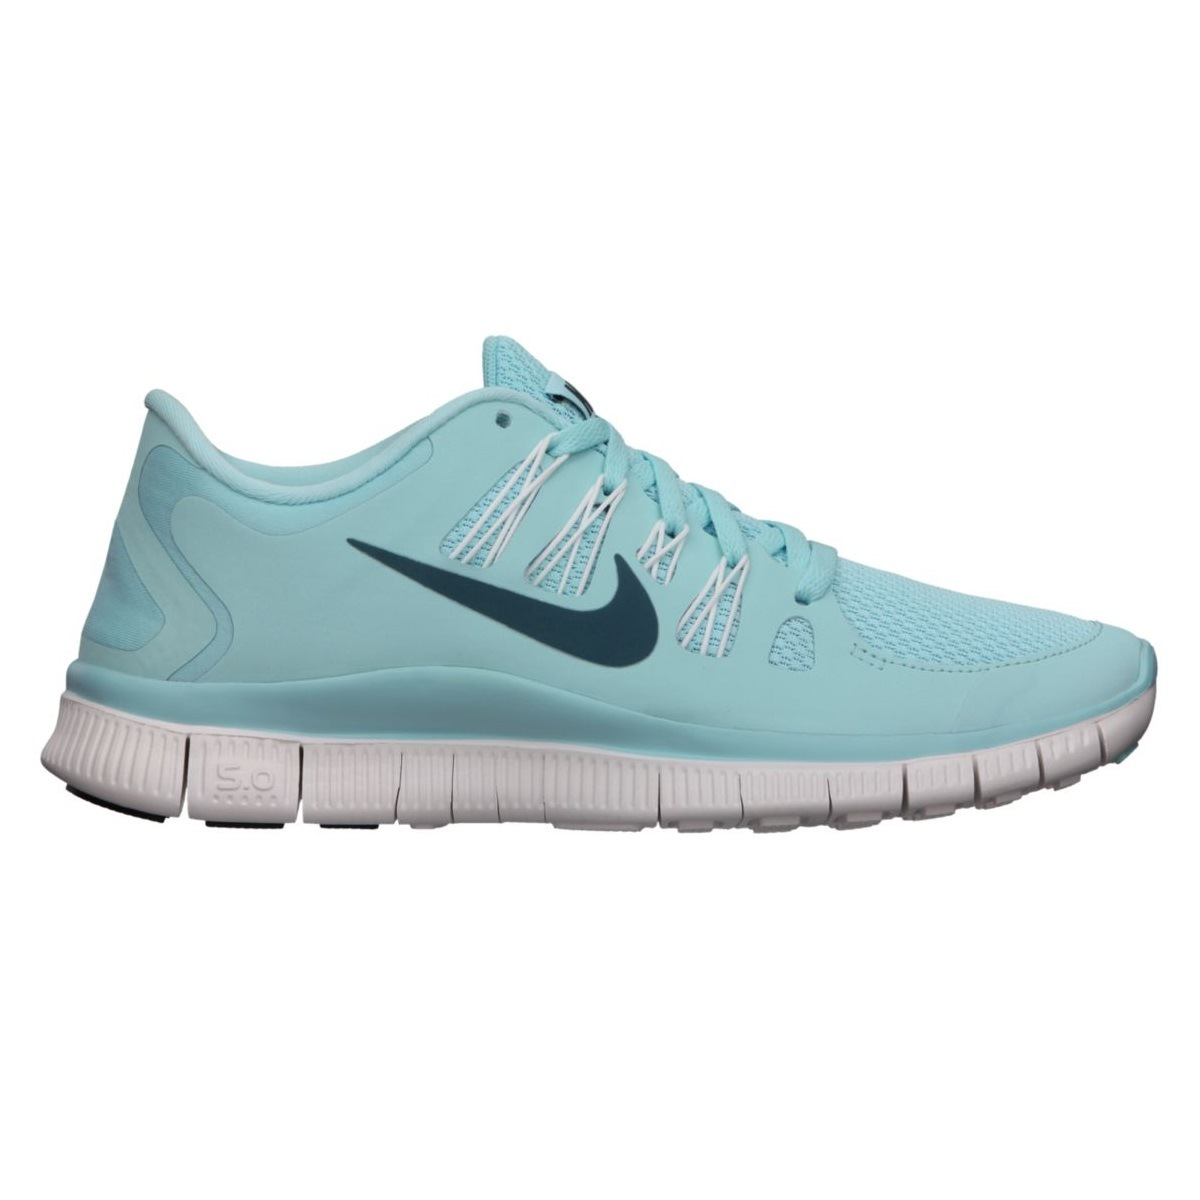 nike free run 5 0 laufschuhe joggingschuhe damen schuhe. Black Bedroom Furniture Sets. Home Design Ideas